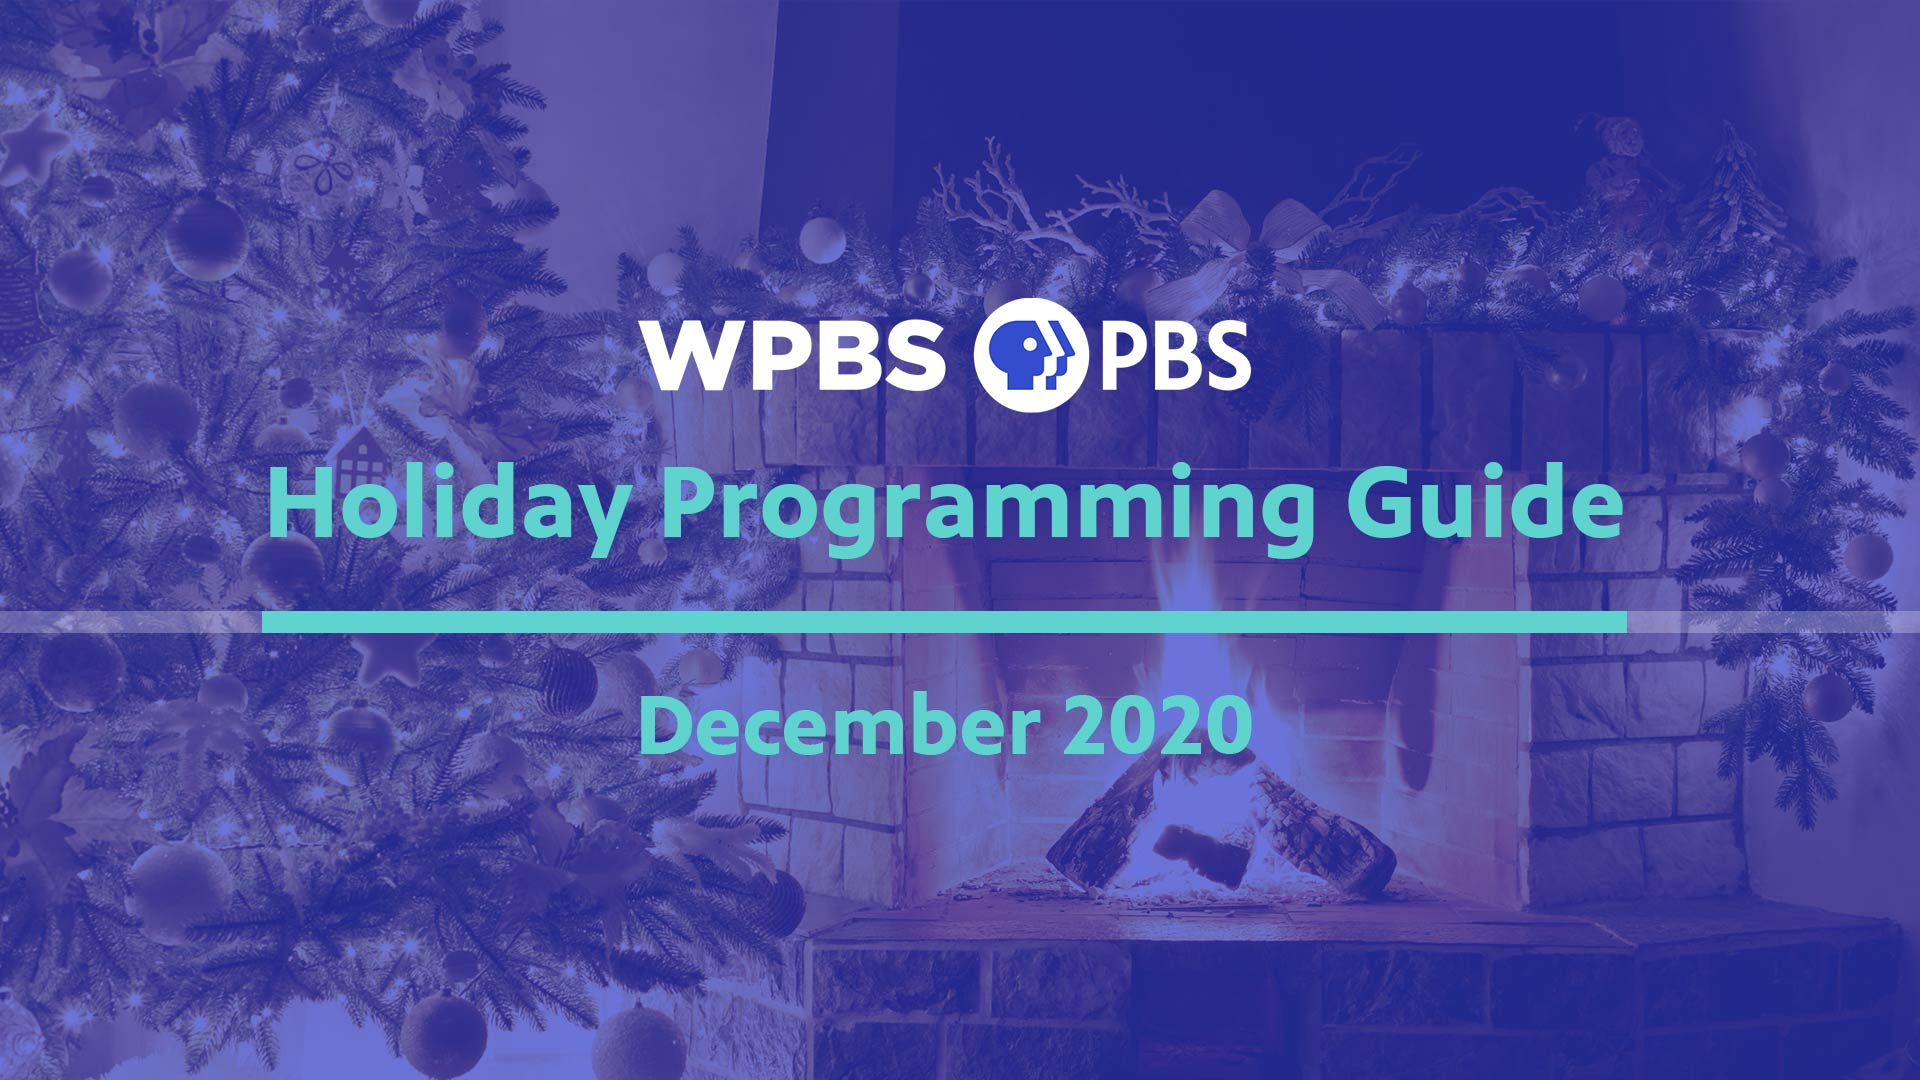 Holiday Program Guide cover image